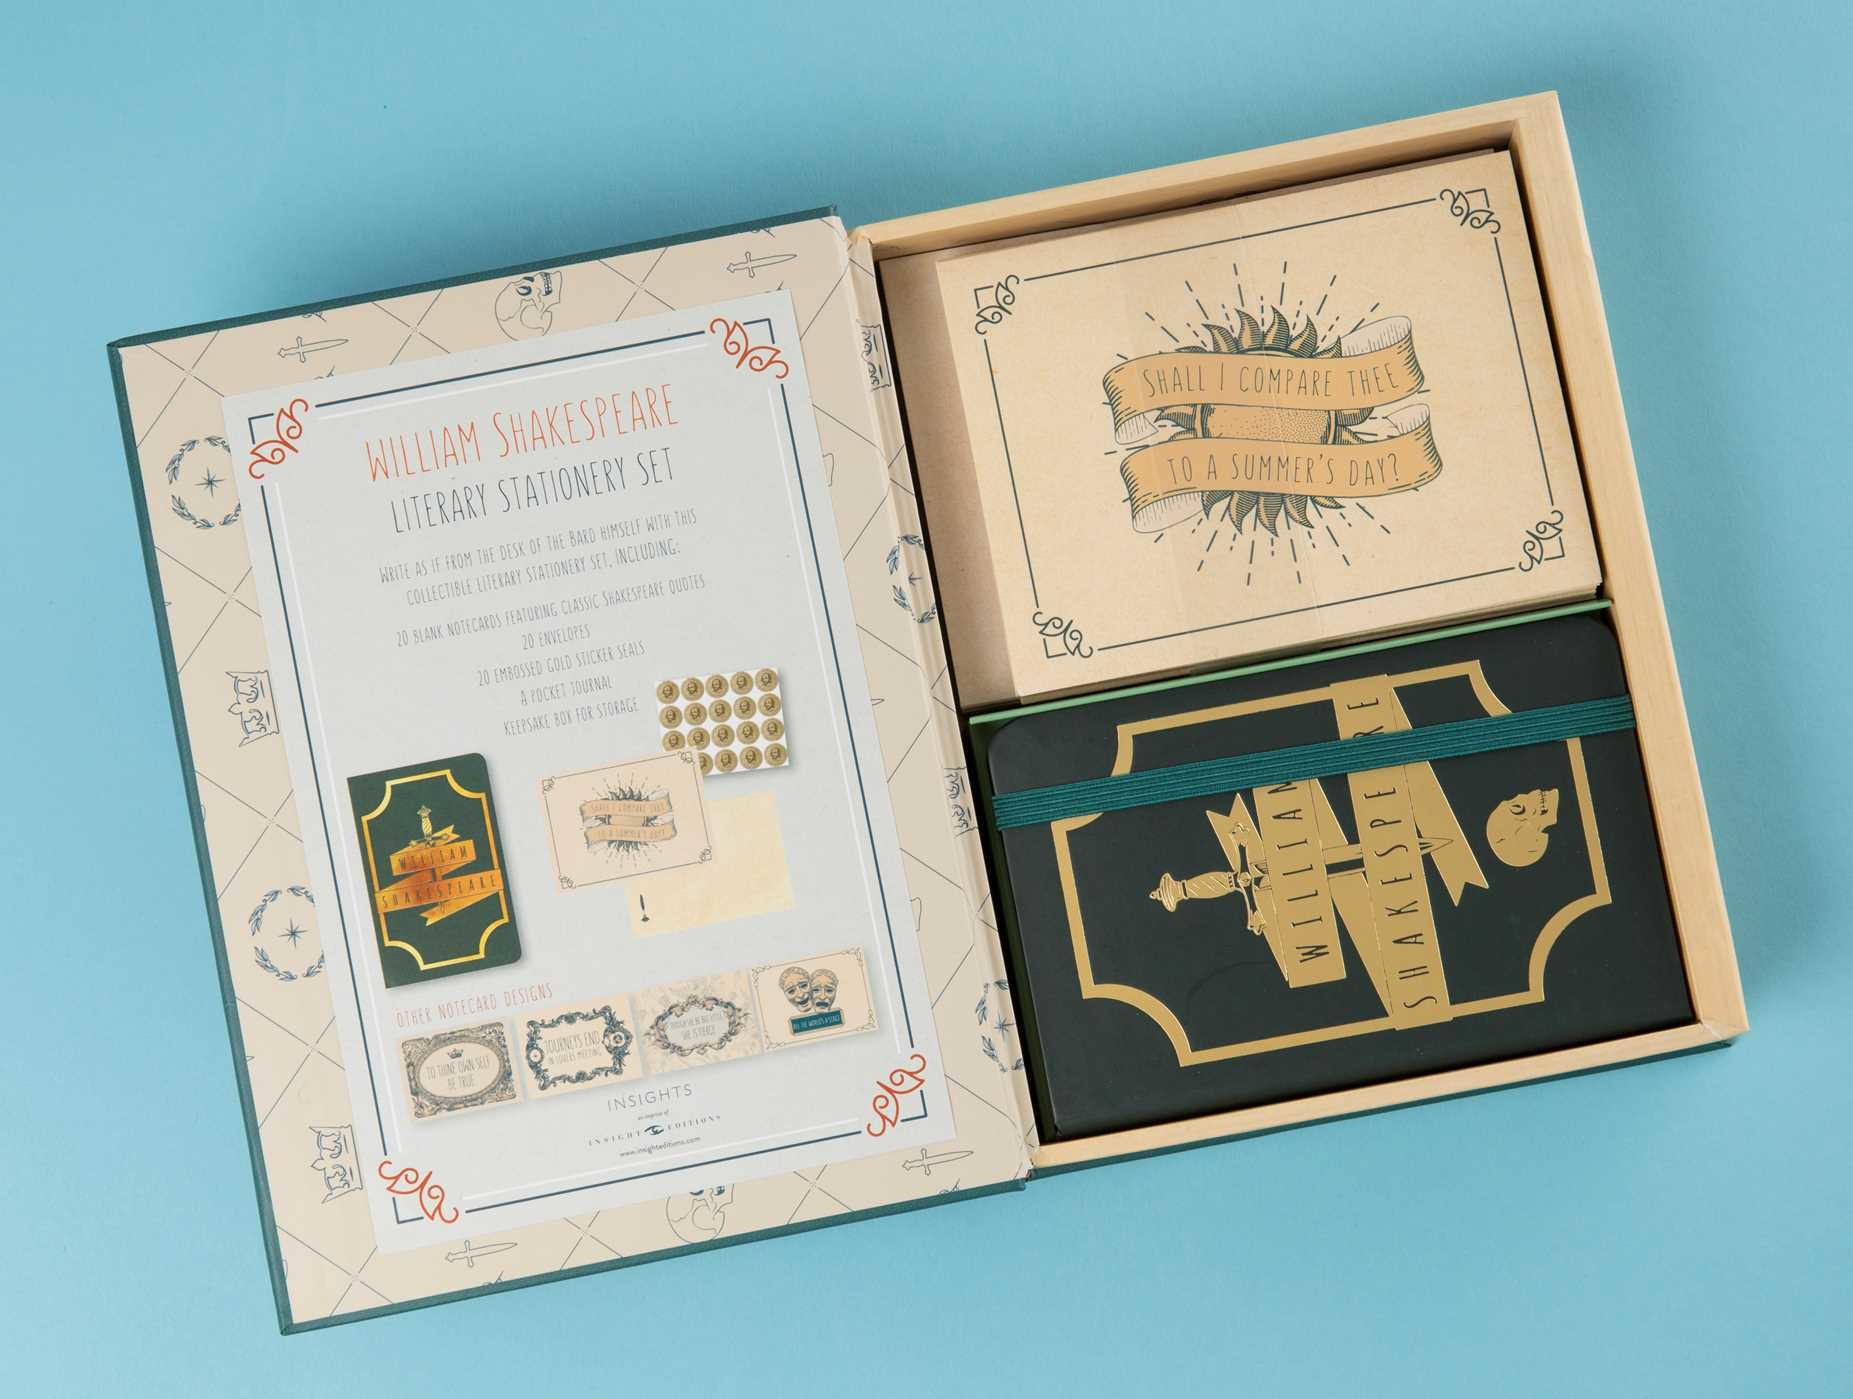 Literary stationery sets william shakespeare 9781683831044.in11